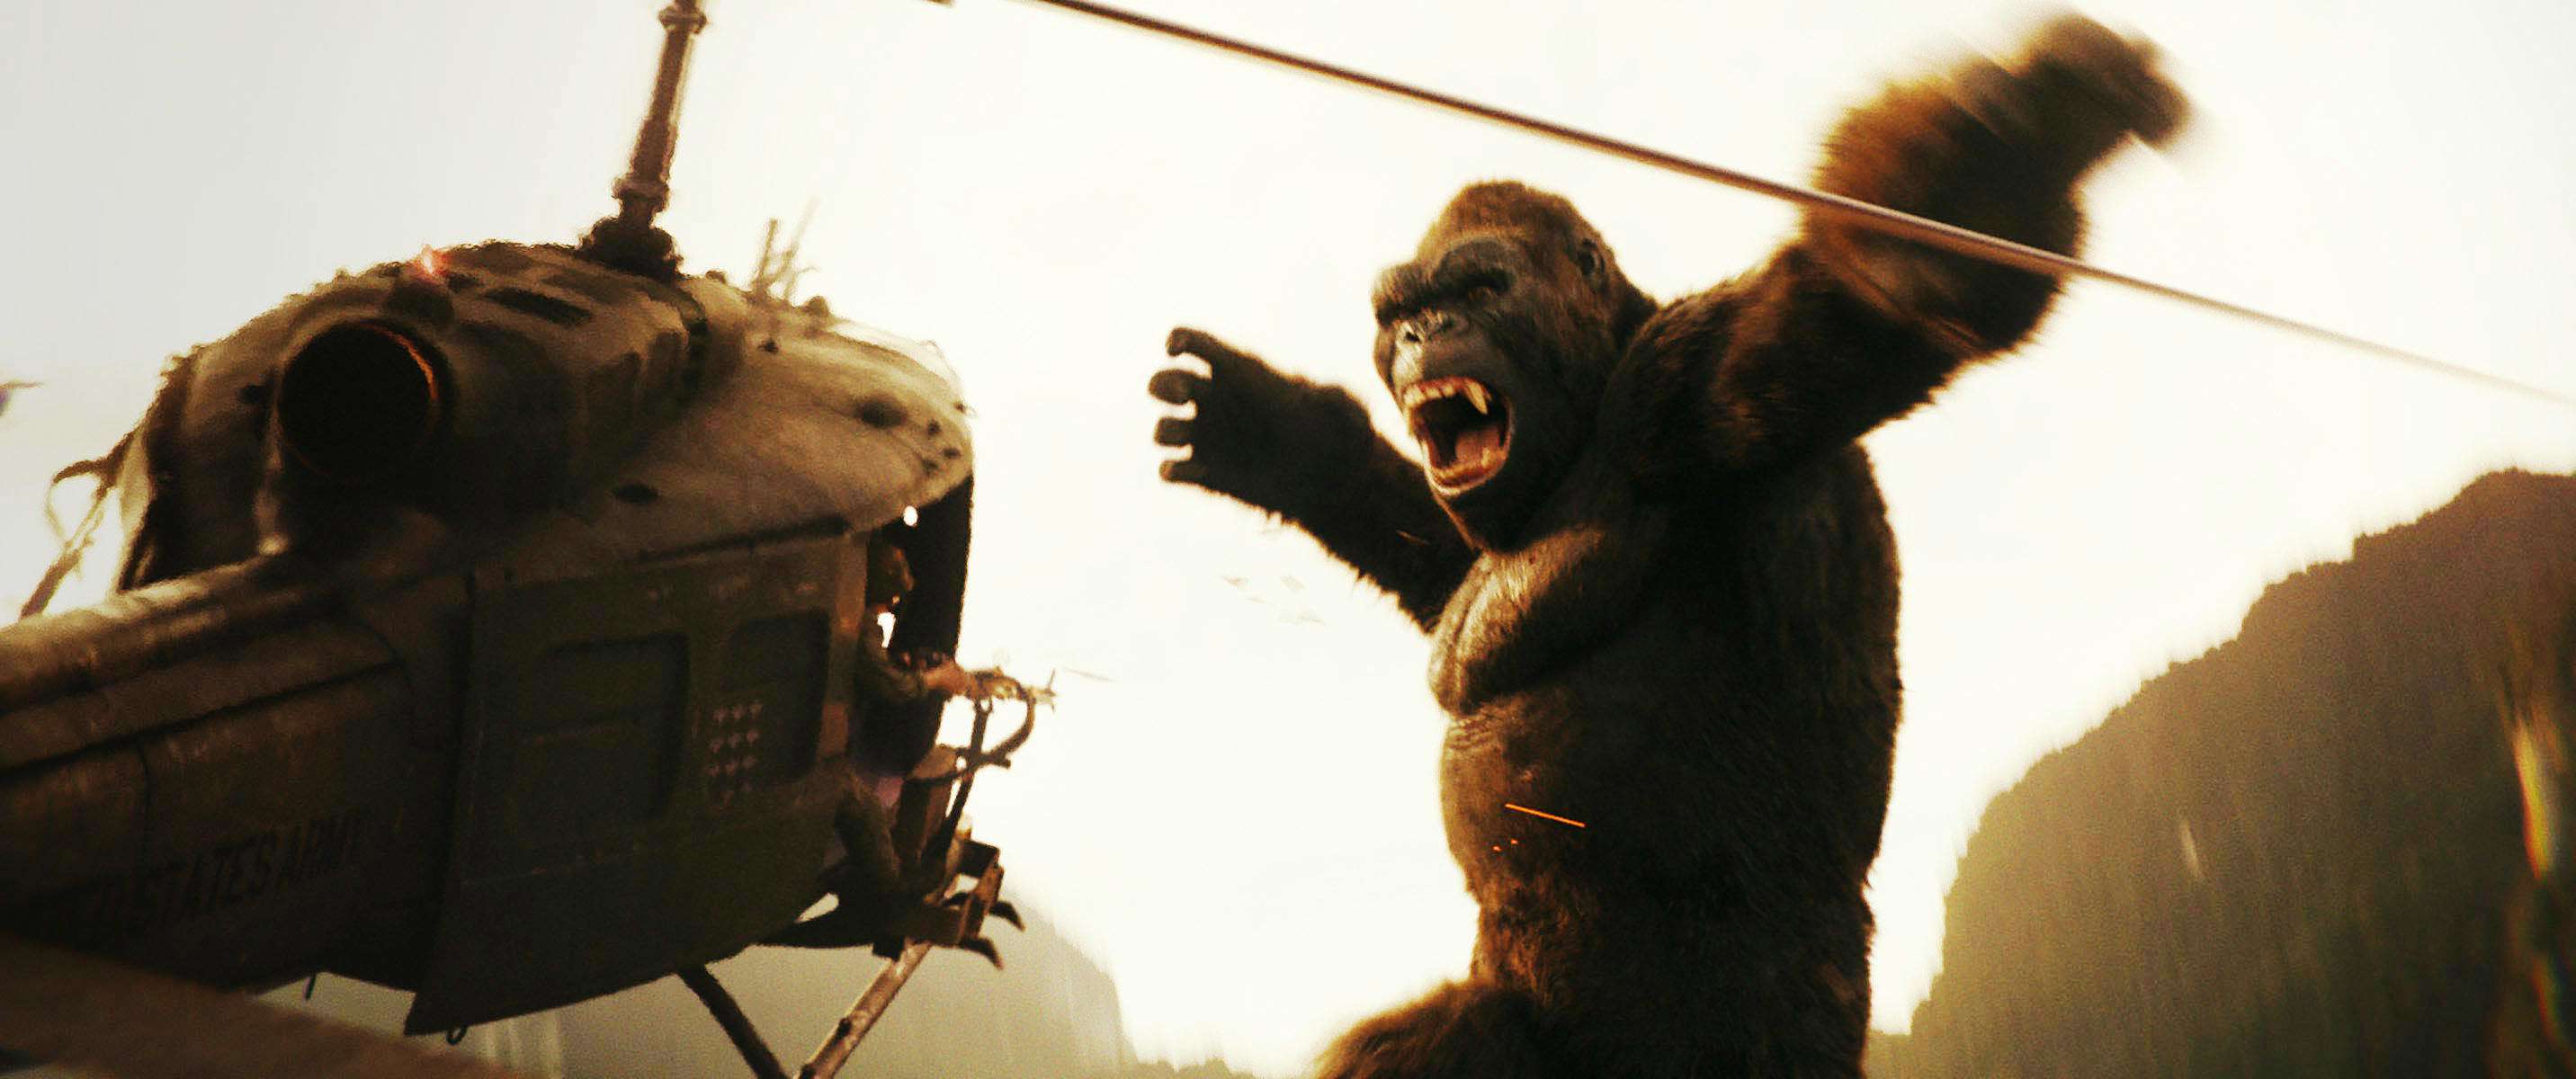 Kong jumps up to attack the helicopter